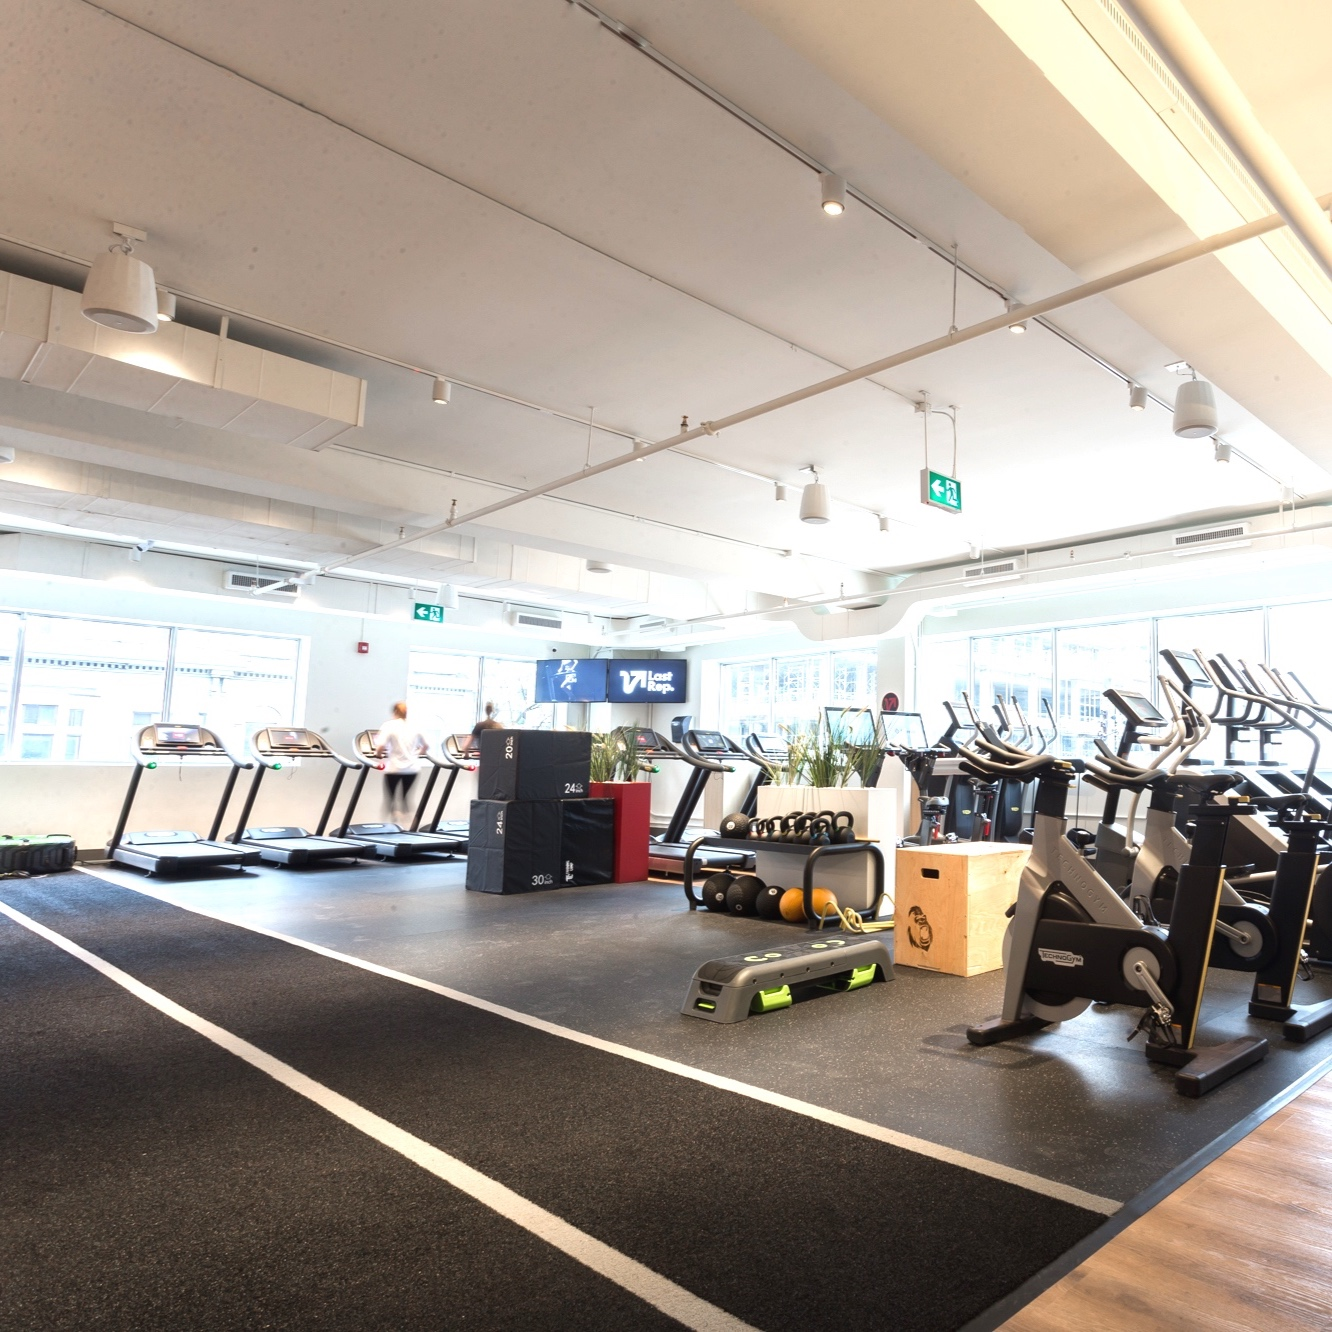 gym-space-to-rent.jpg